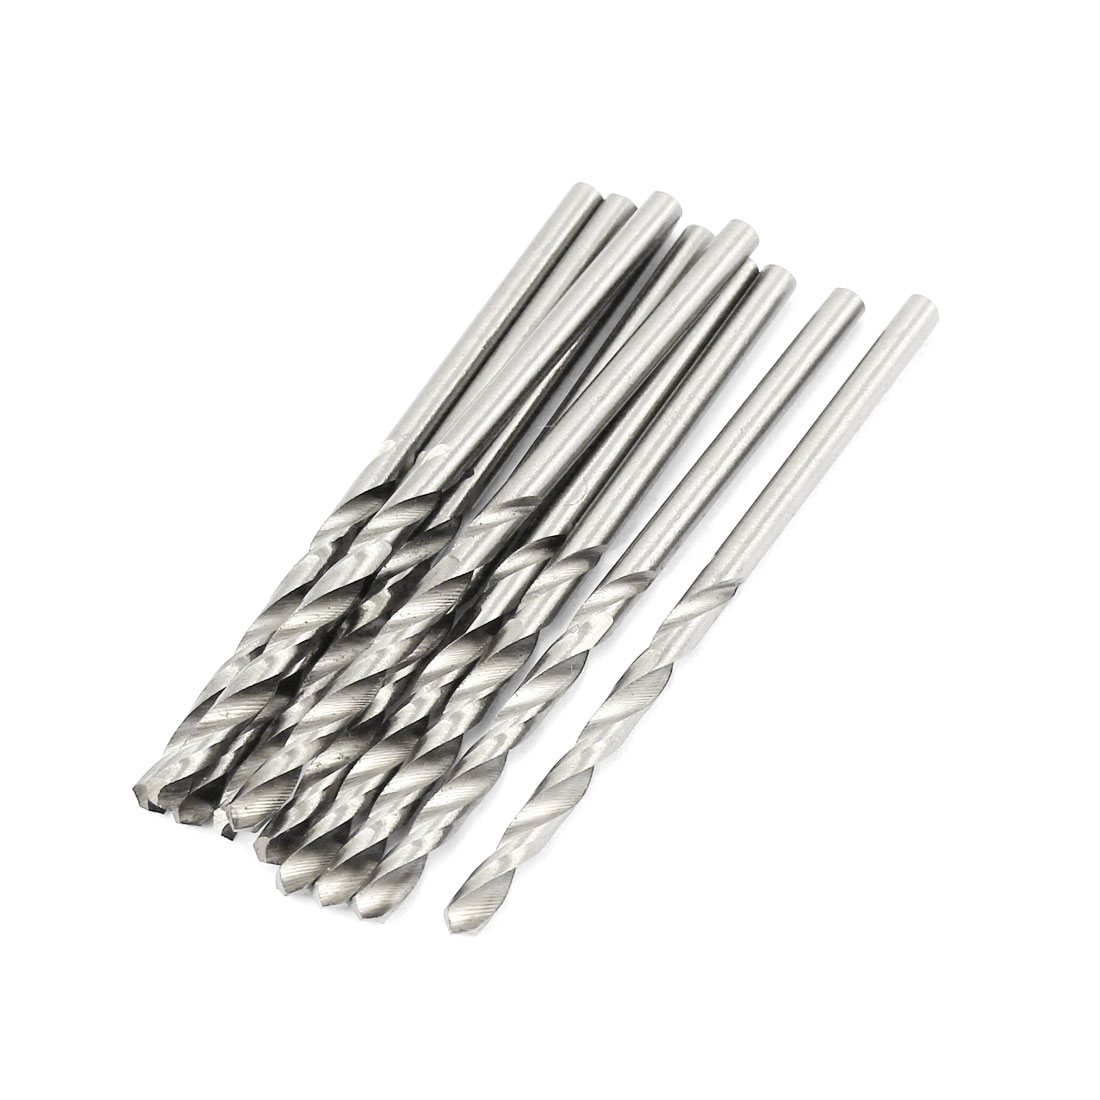 10 Pcs 32mm Length Flute 2.5mm Dia Metal Marble HSS Twist Drilling Drill Bit